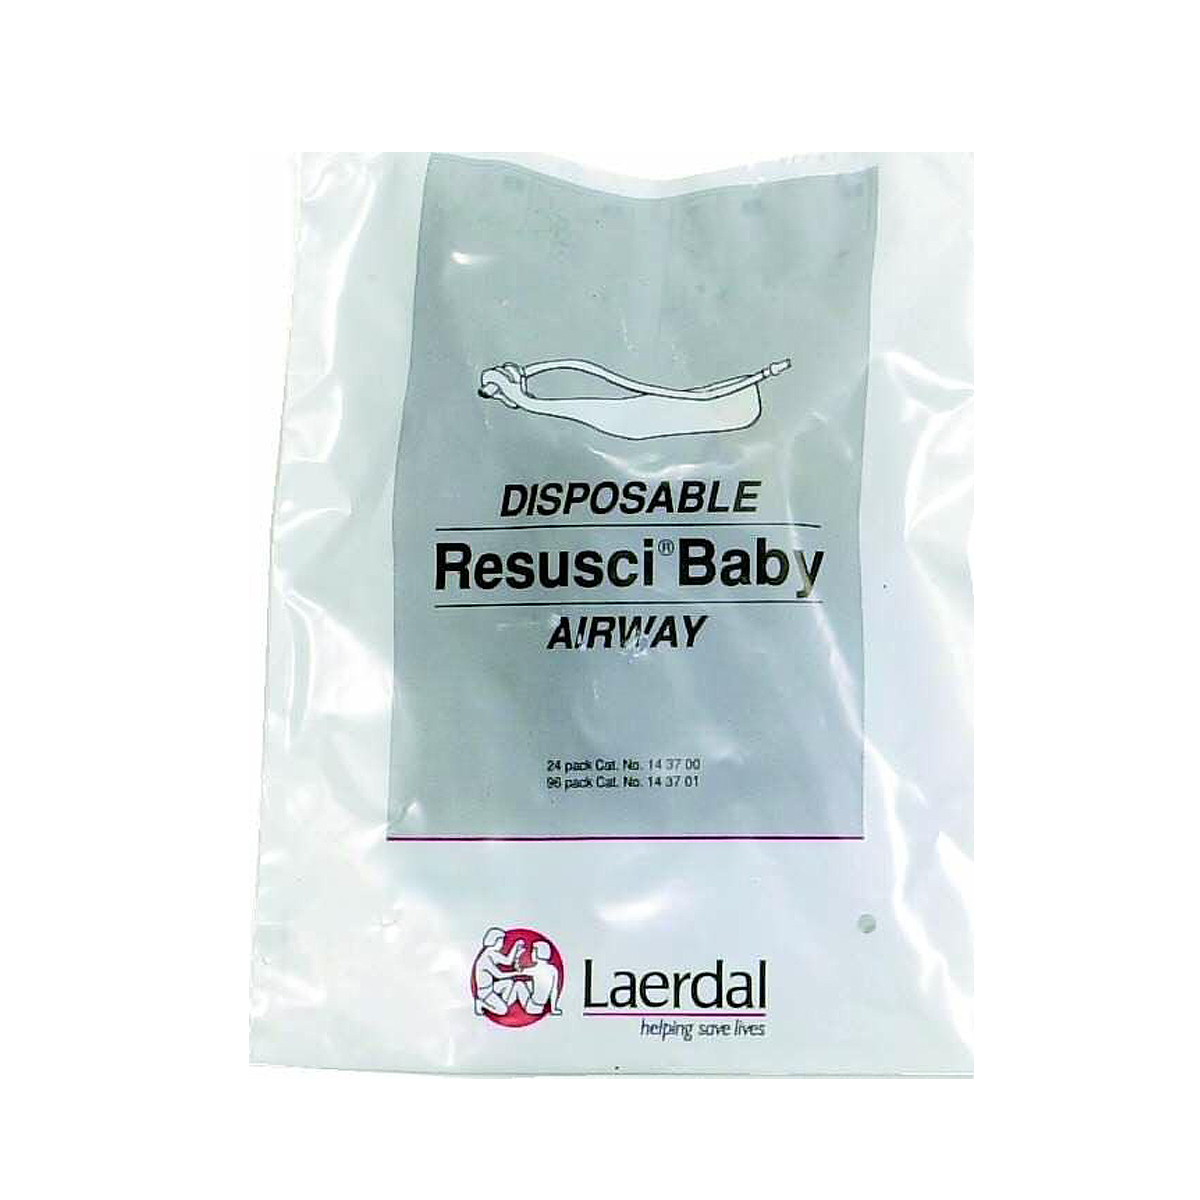 Pack of 96 Laerdal Resusci® Baby Disposable Airways Complete